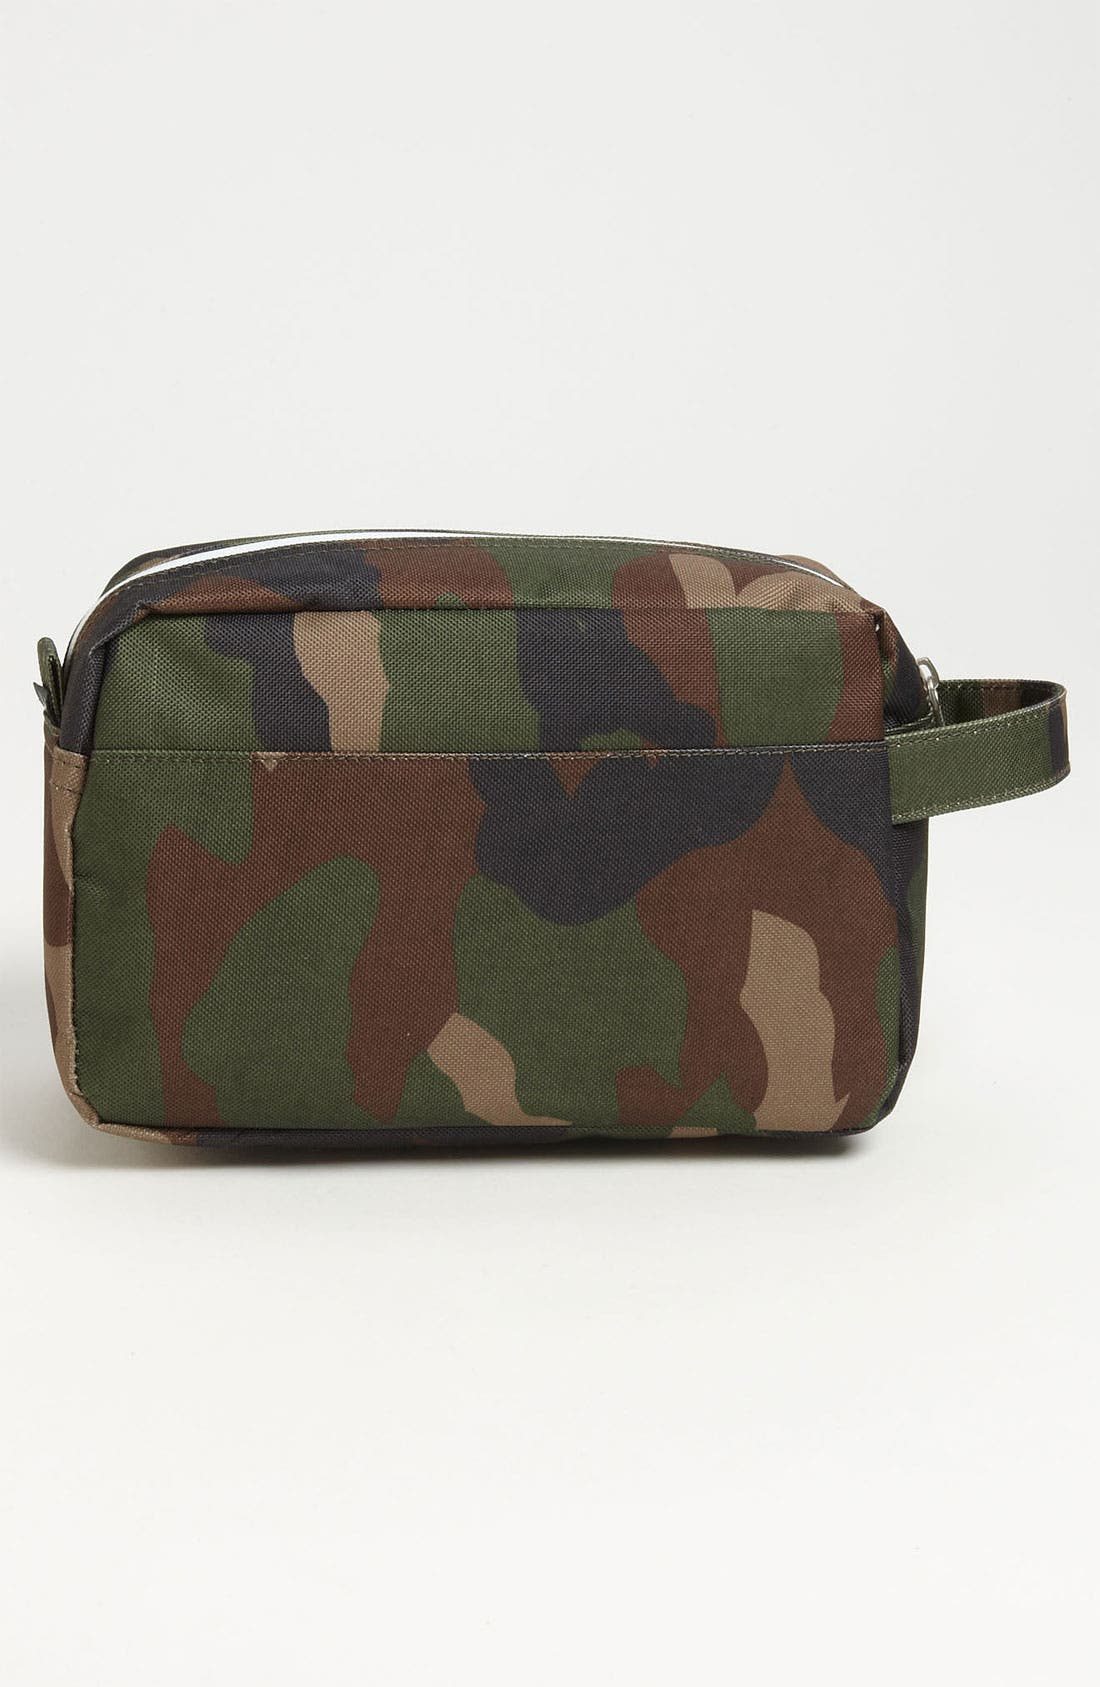 'Chapter' Toiletry Case,                             Alternate thumbnail 6, color,                             WOODLAND CAMO